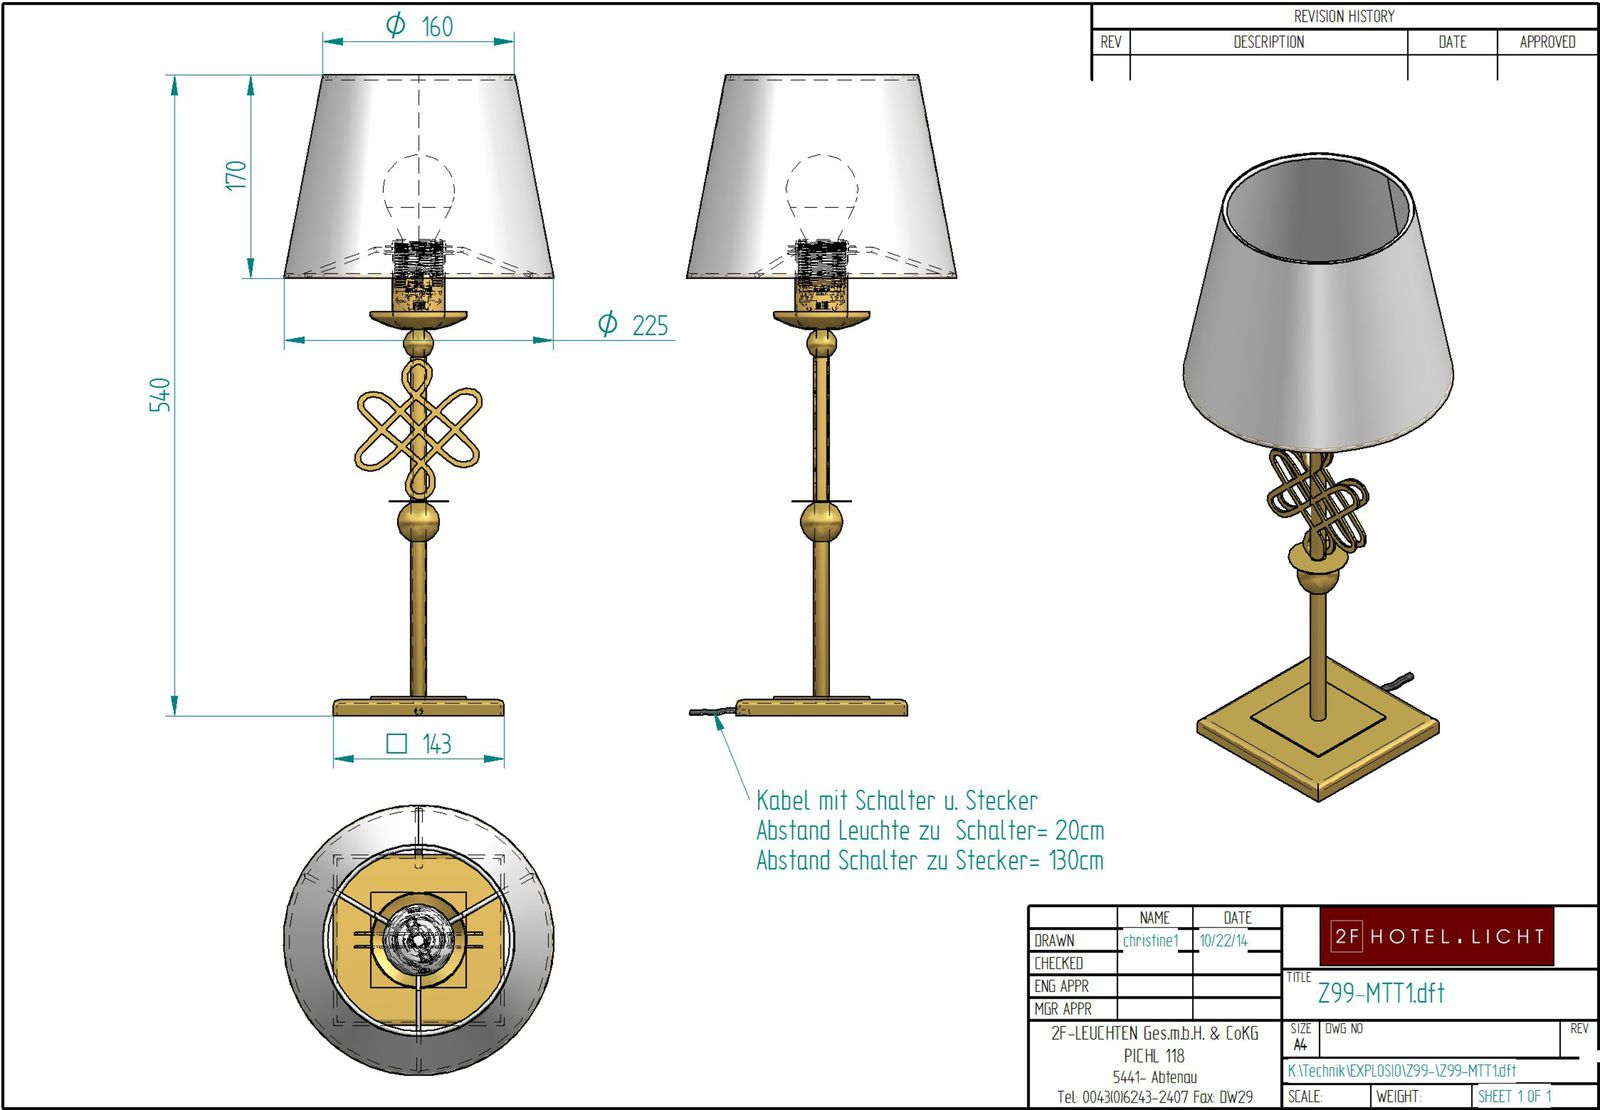 Table lamp L:180 B:180 H:530 technical details: 1xE27 60W